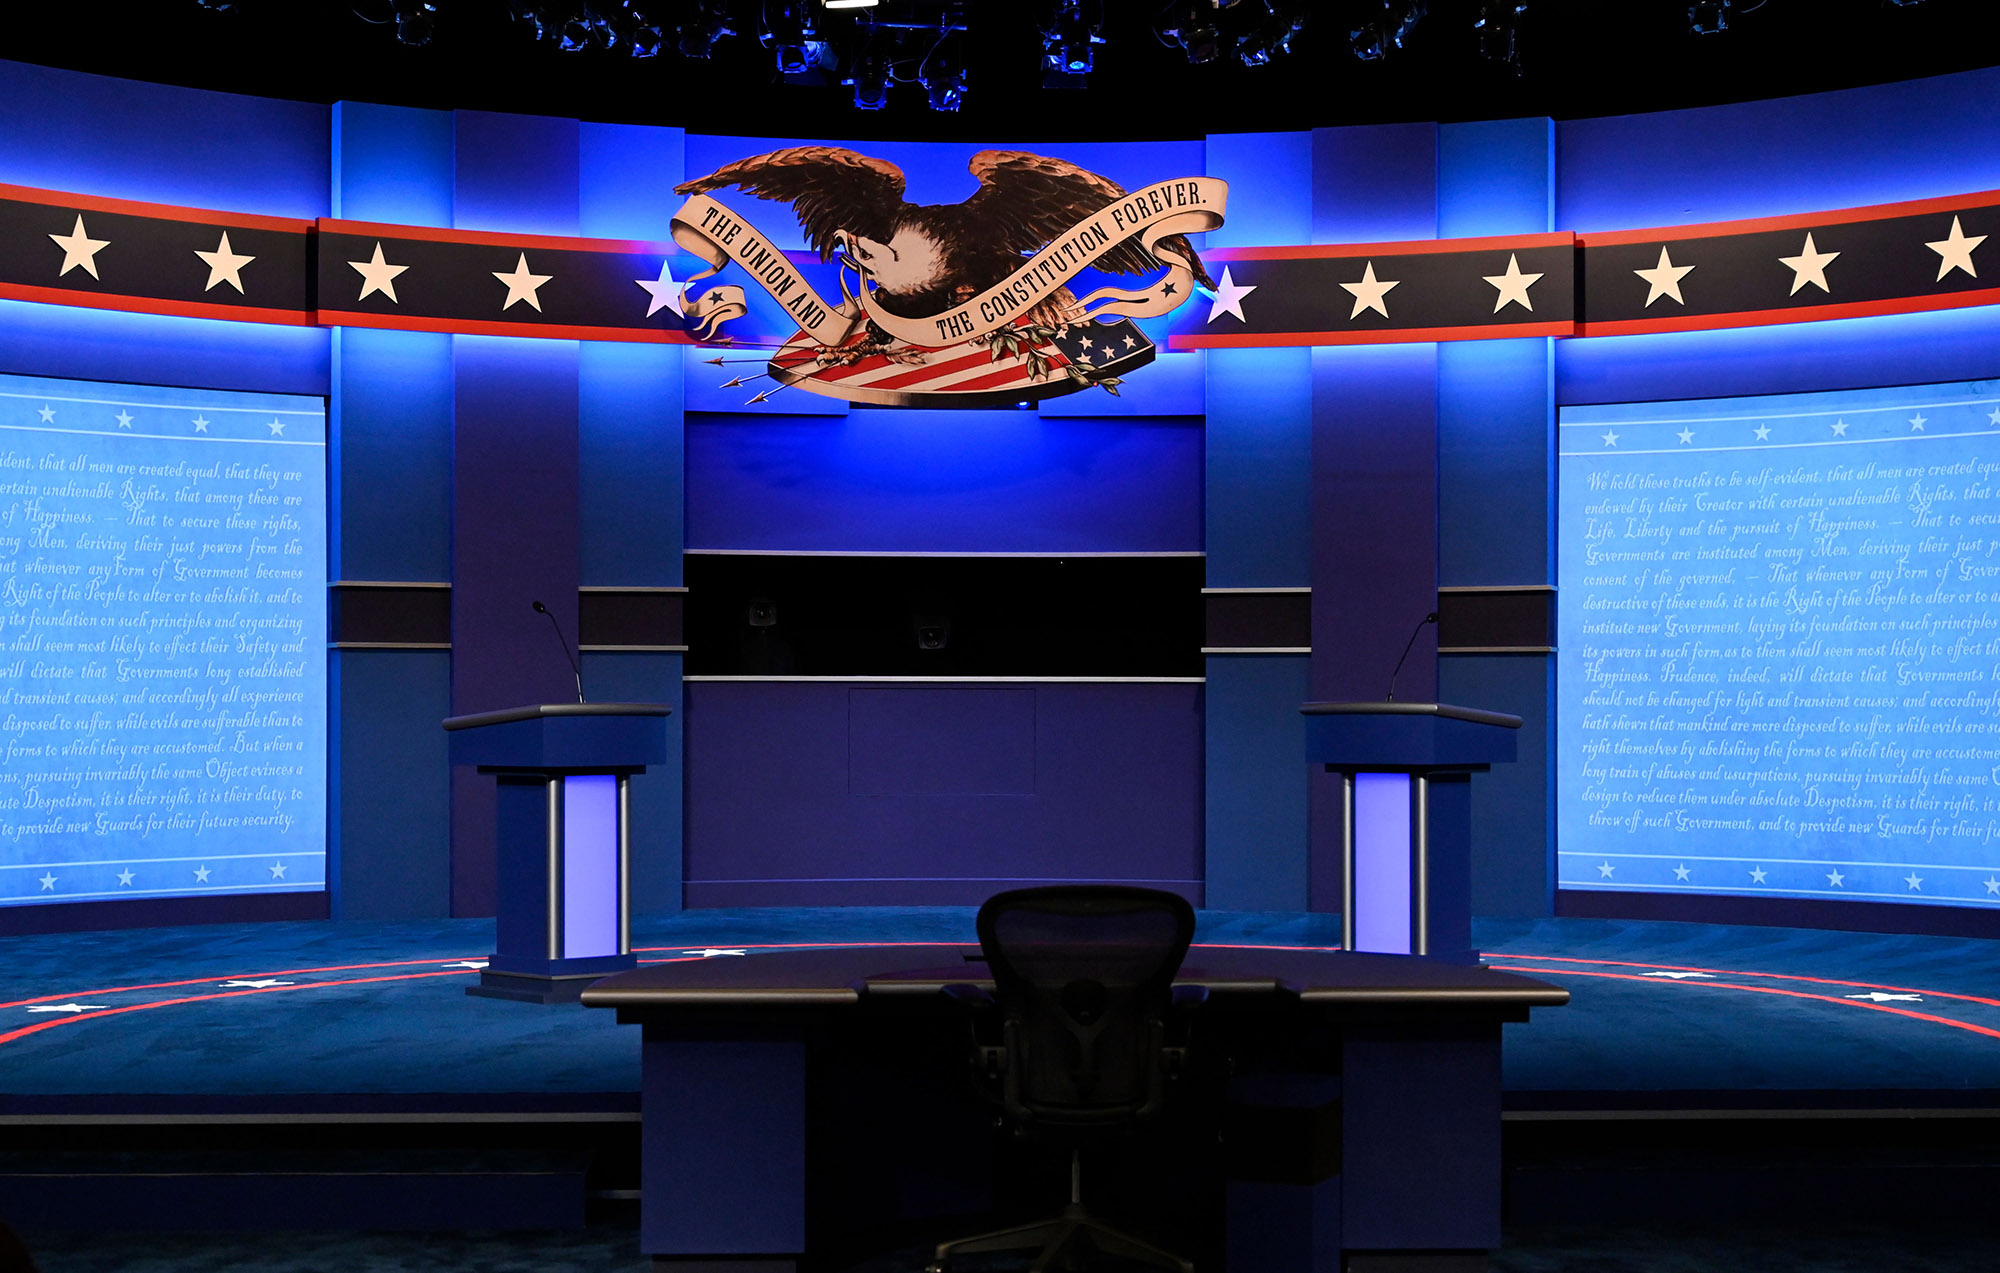 The acrylic glass dividers have been removed from the stage after both US President Donald Trump and Democratic Presidential candidate and former US Vice President Joe Biden had a negative test result for Covid-19 ahead of the final presidential debate at Belmont University in Nashville, Tennessee, on October 22.